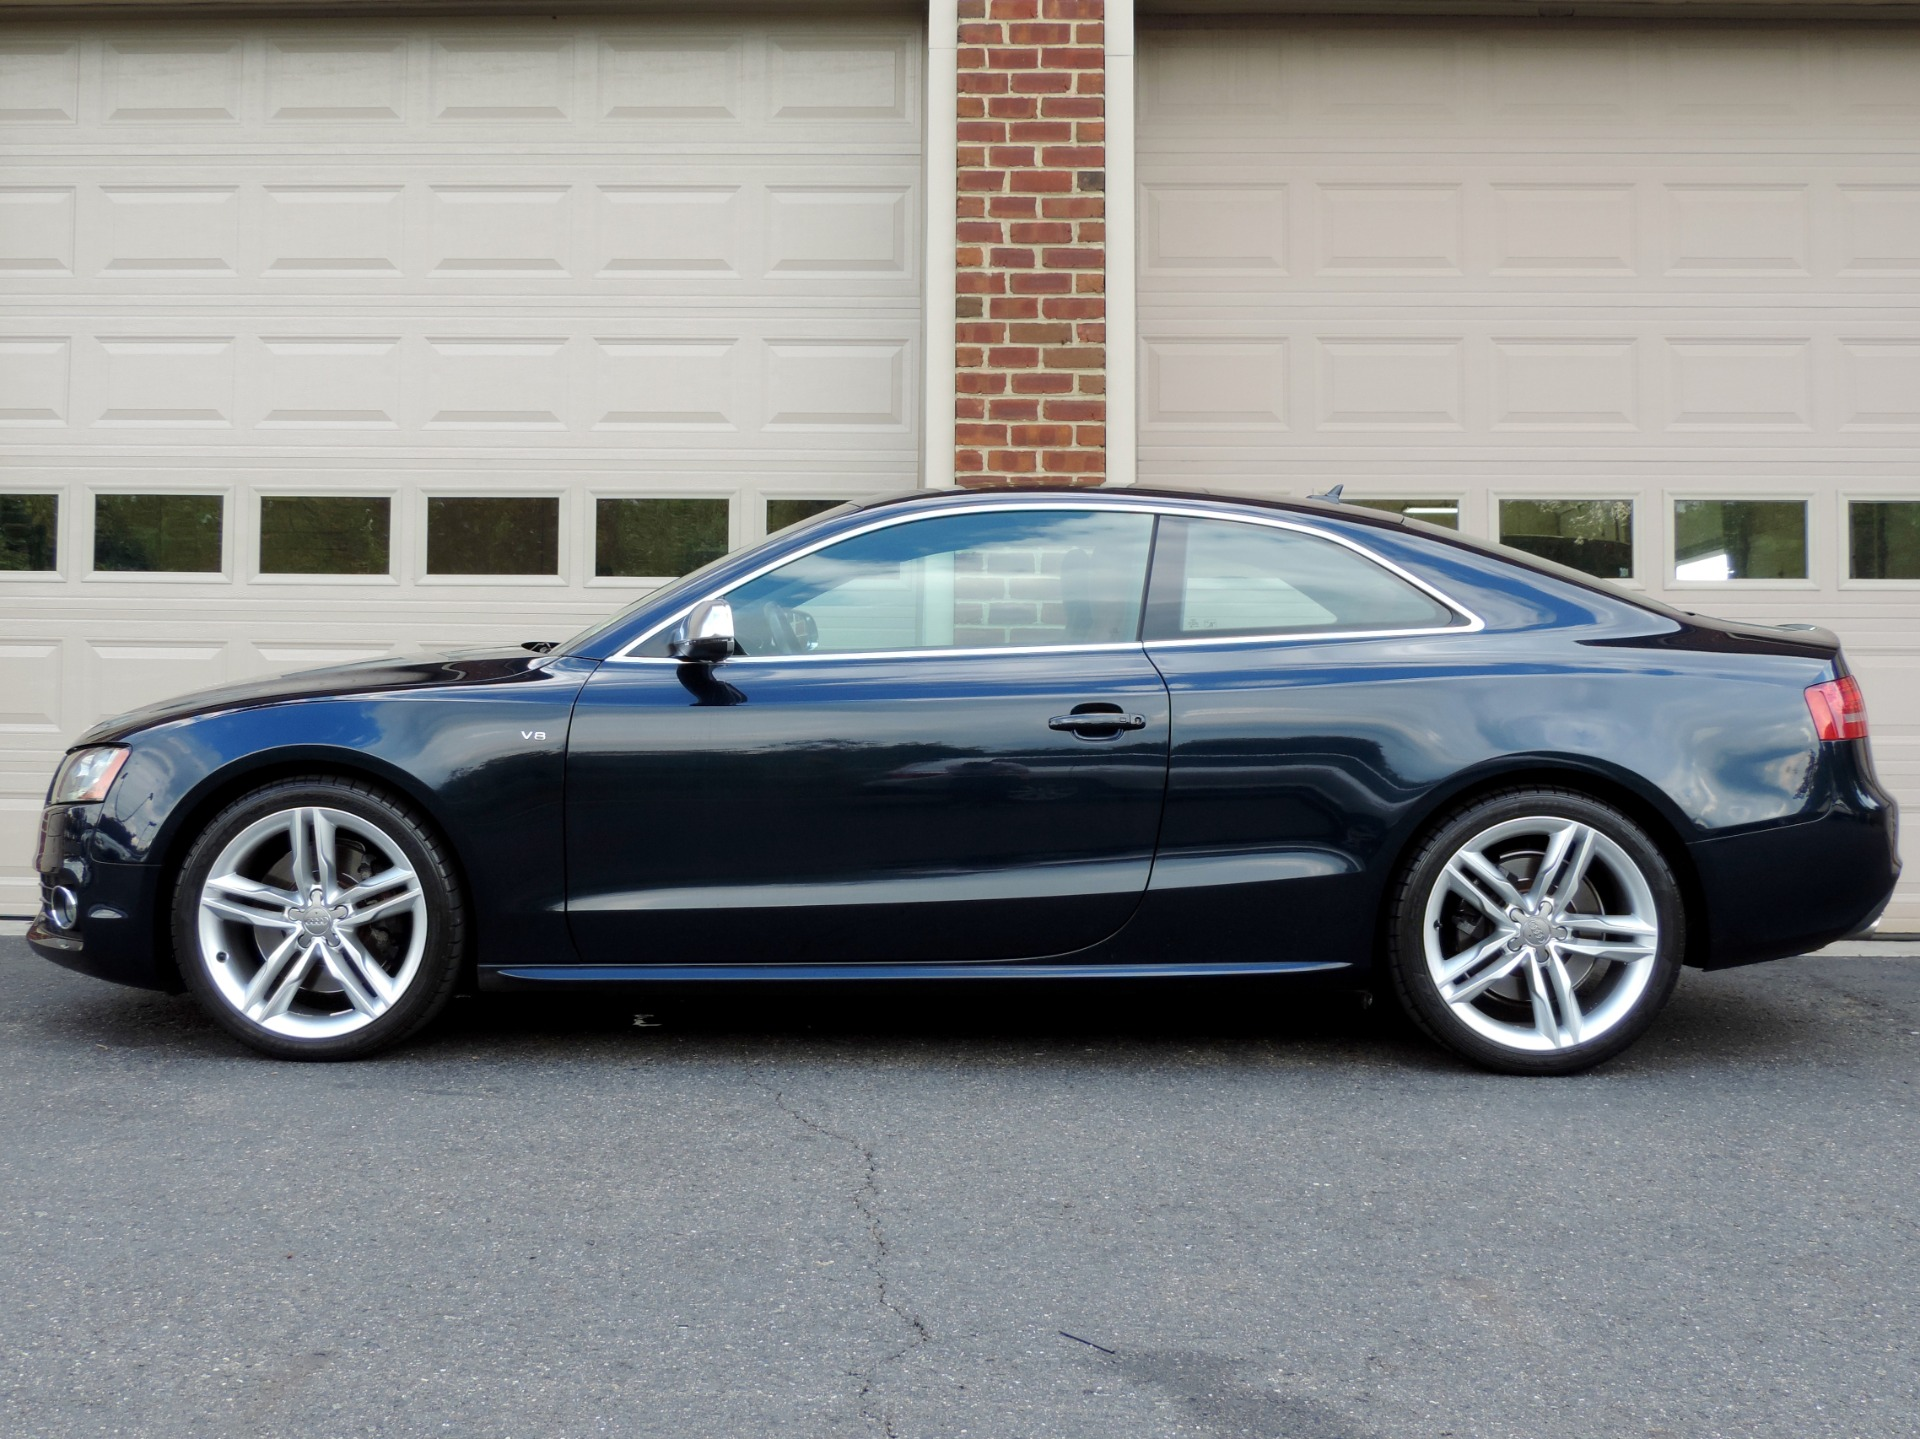 Audi Dealers Nj >> 2011 Audi S5 4.2 quattro Premium Plus Stock # 047844 for sale near Edgewater Park, NJ | NJ Audi ...